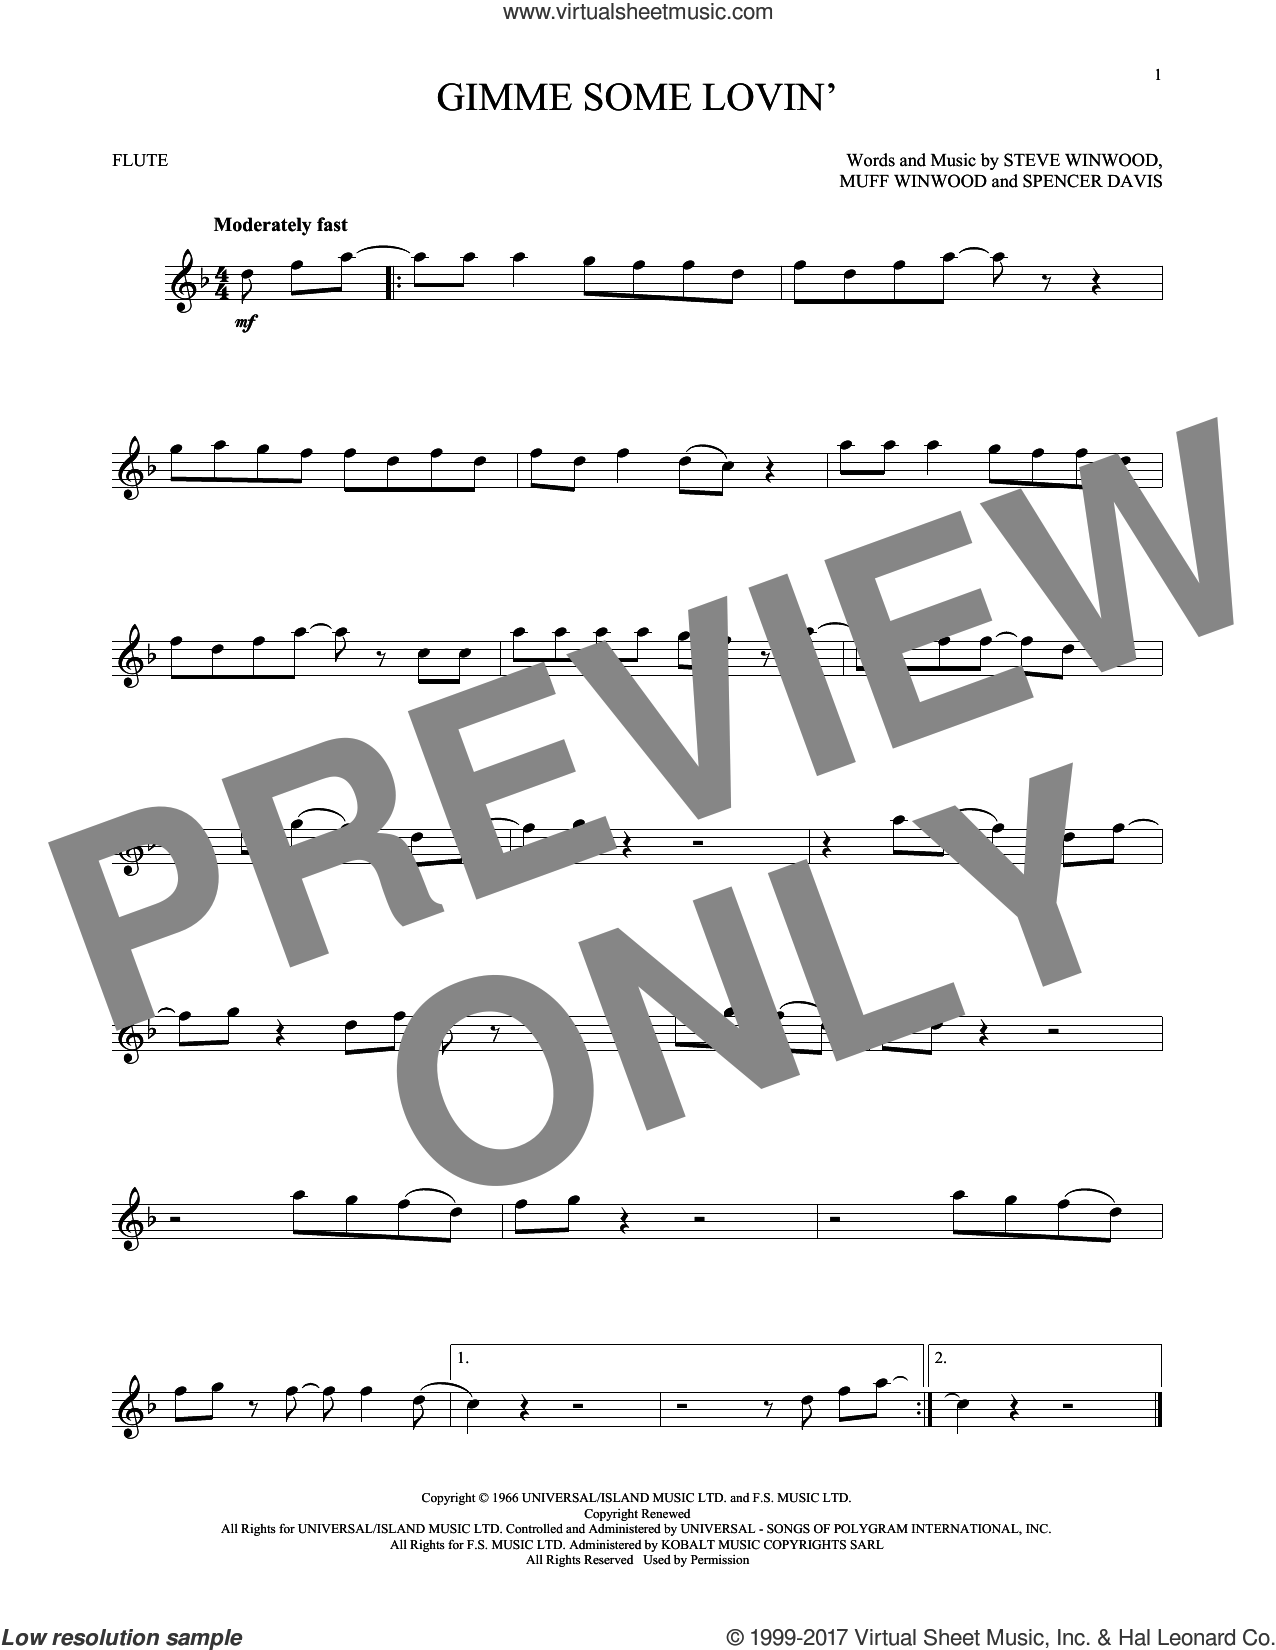 Gimme Some Lovin' sheet music for flute solo by The Spencer Davis Group, Muff Winwood, Spencer Davis and Steve Winwood, intermediate